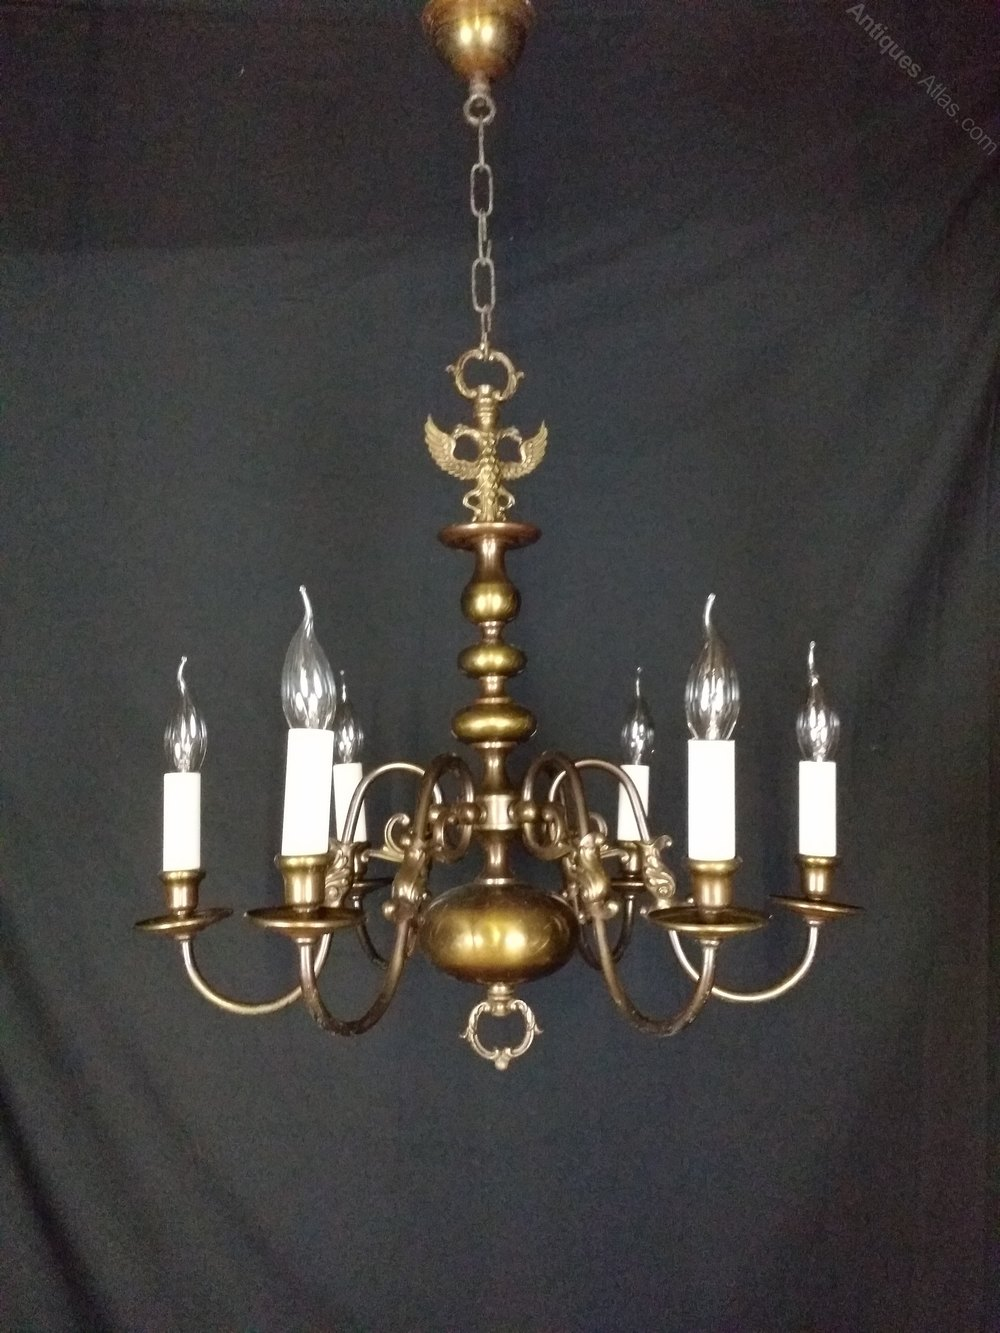 Flemish chandeliers flemish chandeliers this is a delightful smaller size six light flemish chandelier this chandelier is brass but has over the years built up a lovely patina giving it a bronze arubaitofo Gallery